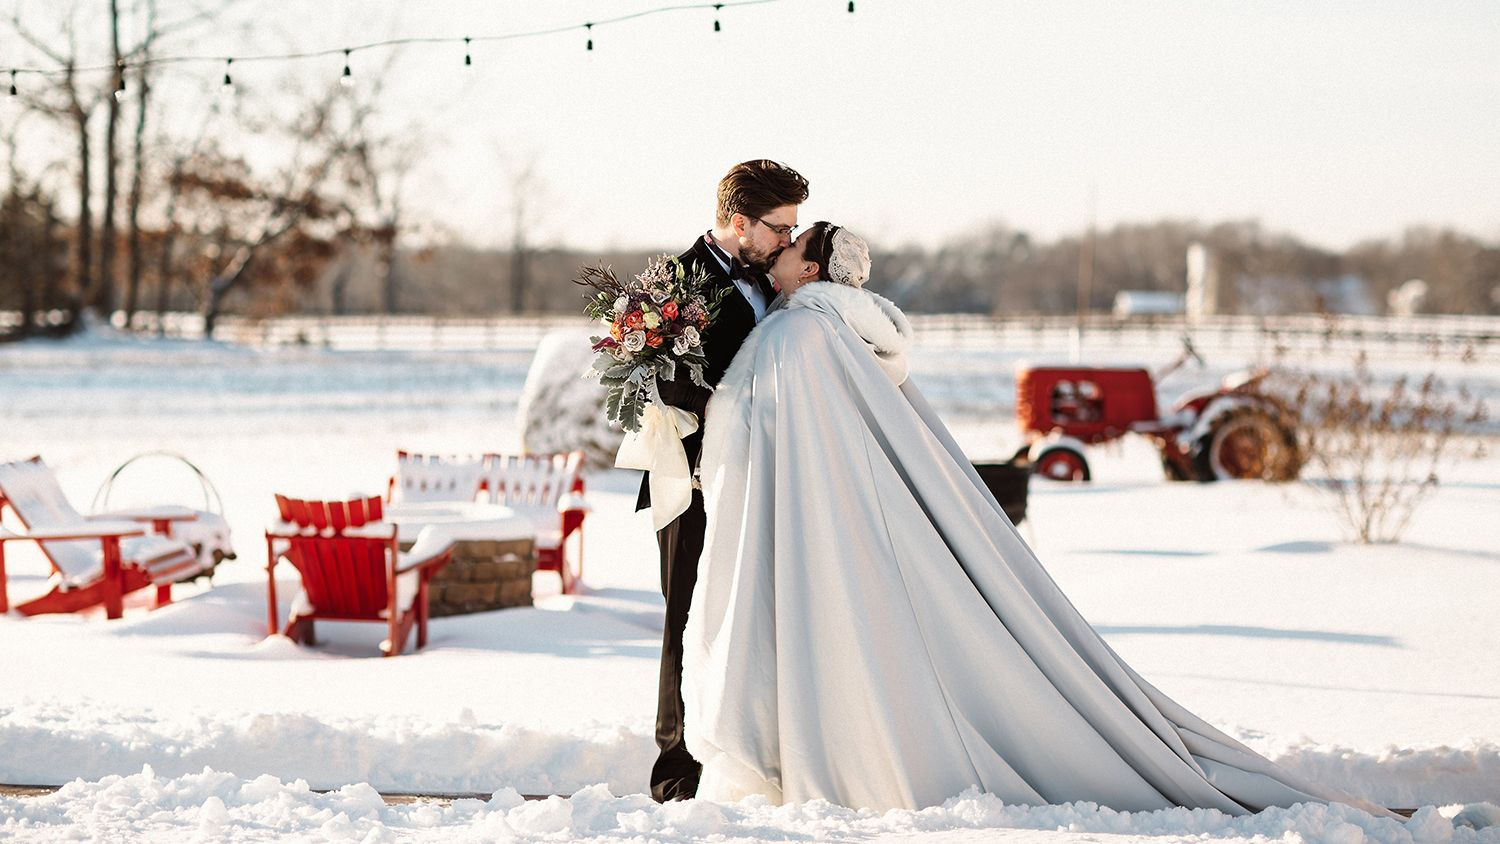 Bride And Groom Kissing Winter Snow